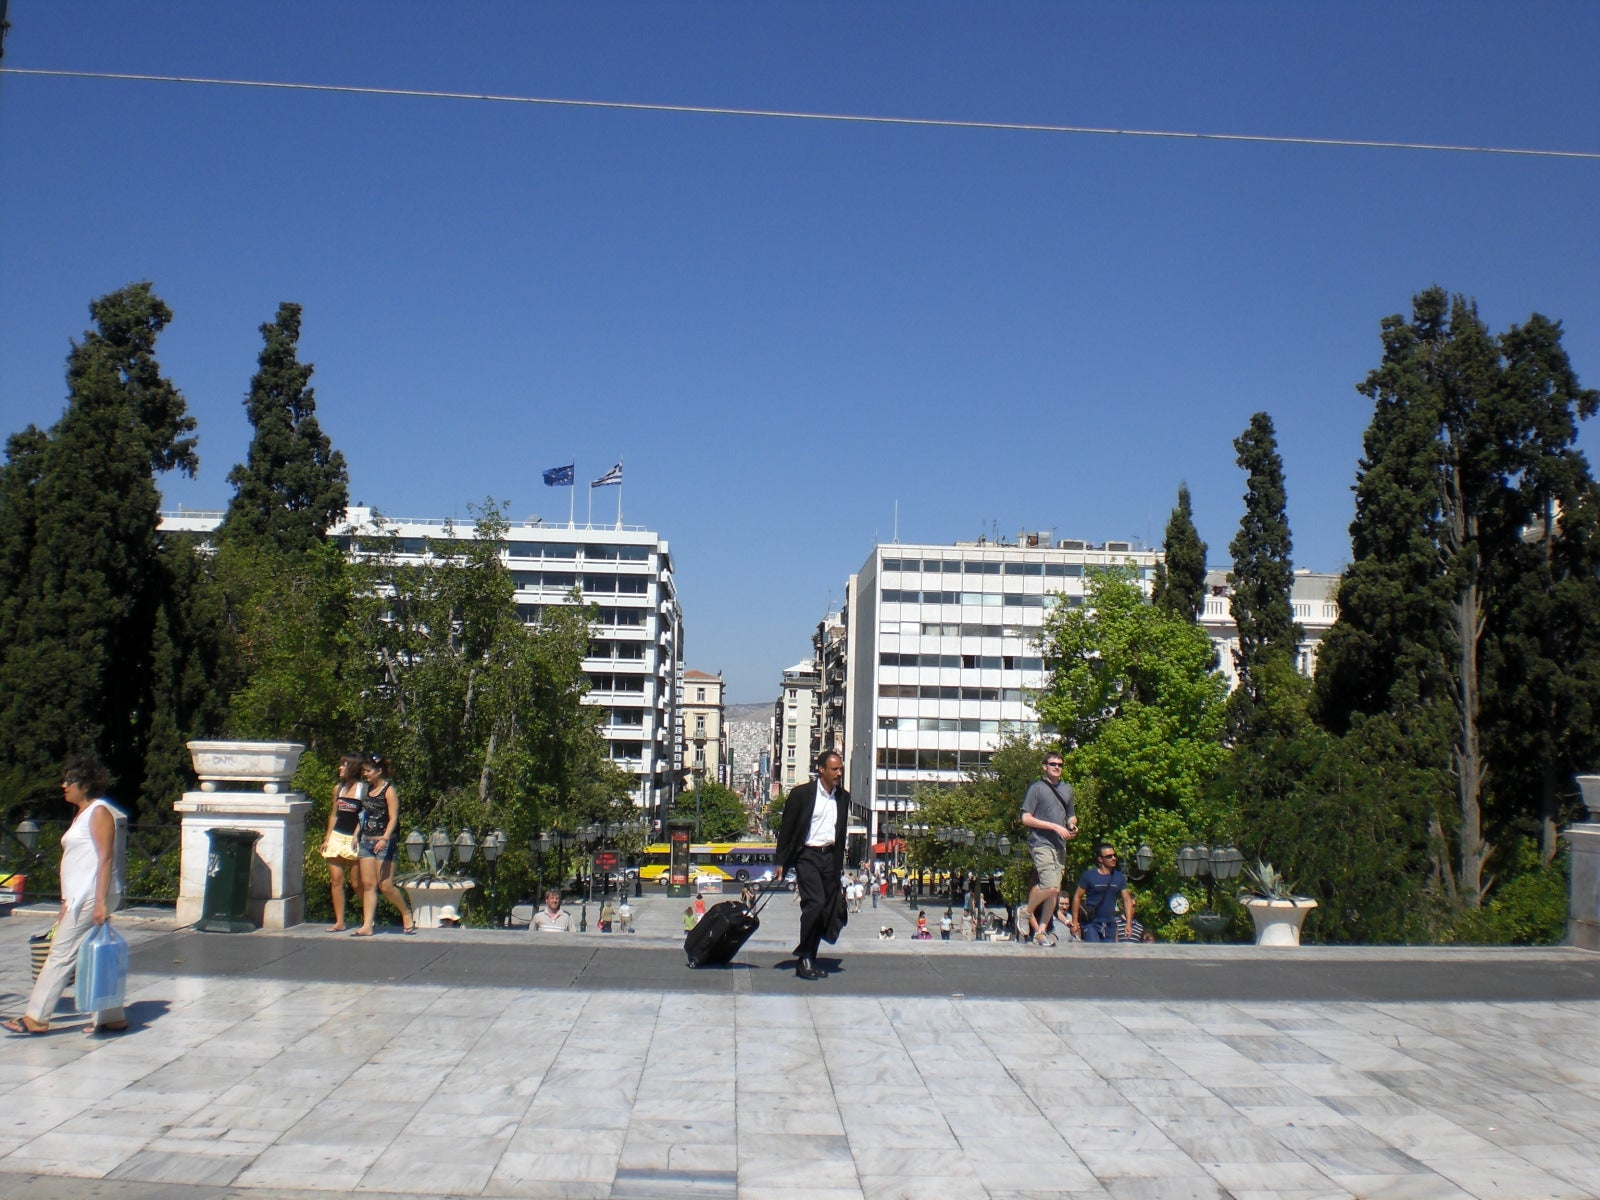 Memorial en Plaza de Syntagma